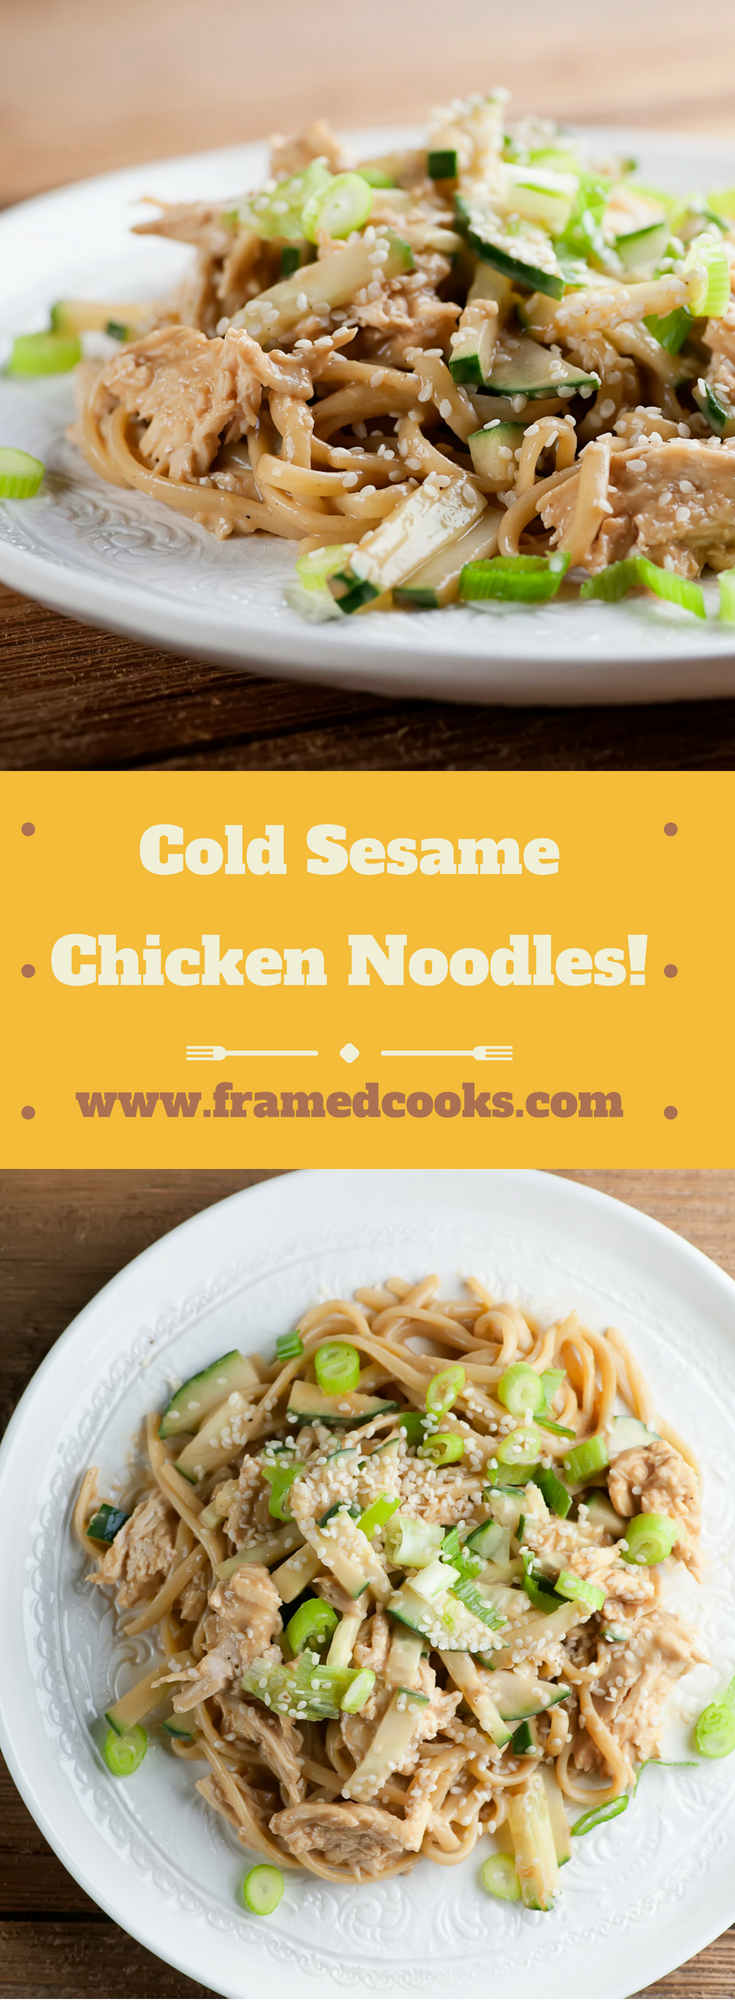 This easy recipe for cold sesame chicken noodles is the perfect one dish supper, with the perfect blend of peanut and sesame flavored sauce.